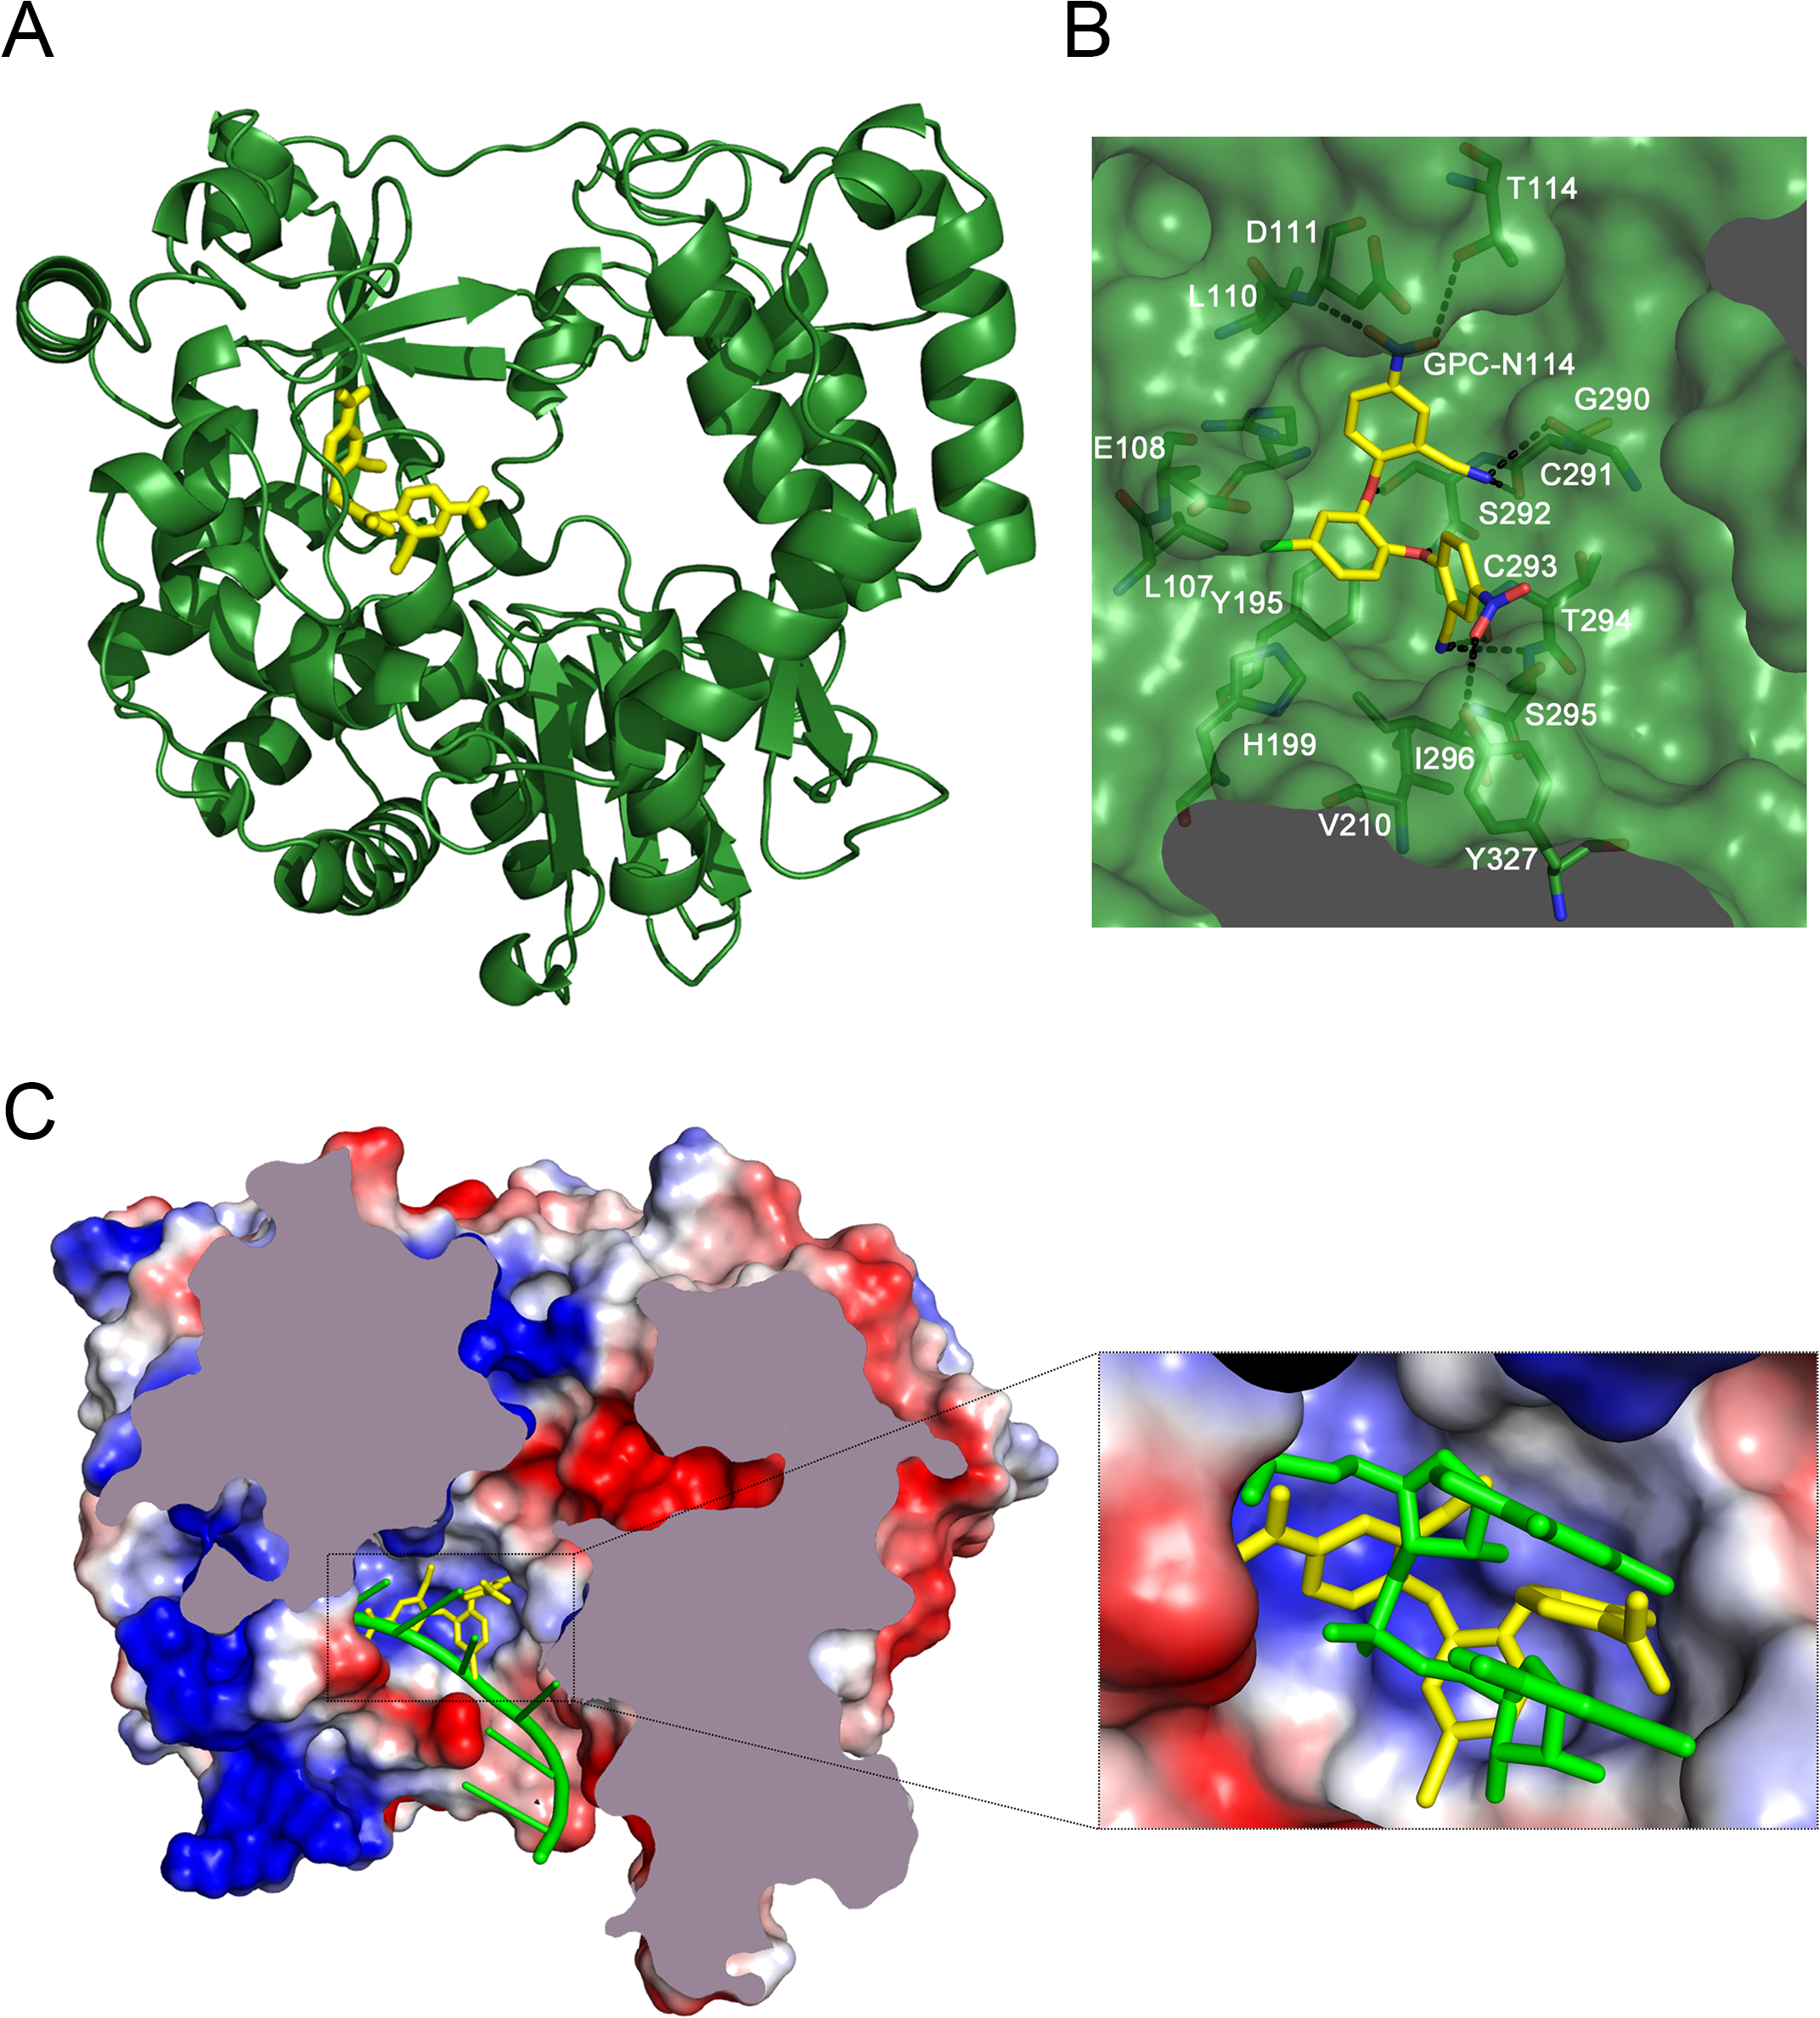 The binding site of GPC-N114 on CVB3 3D<sup>pol</sup>.